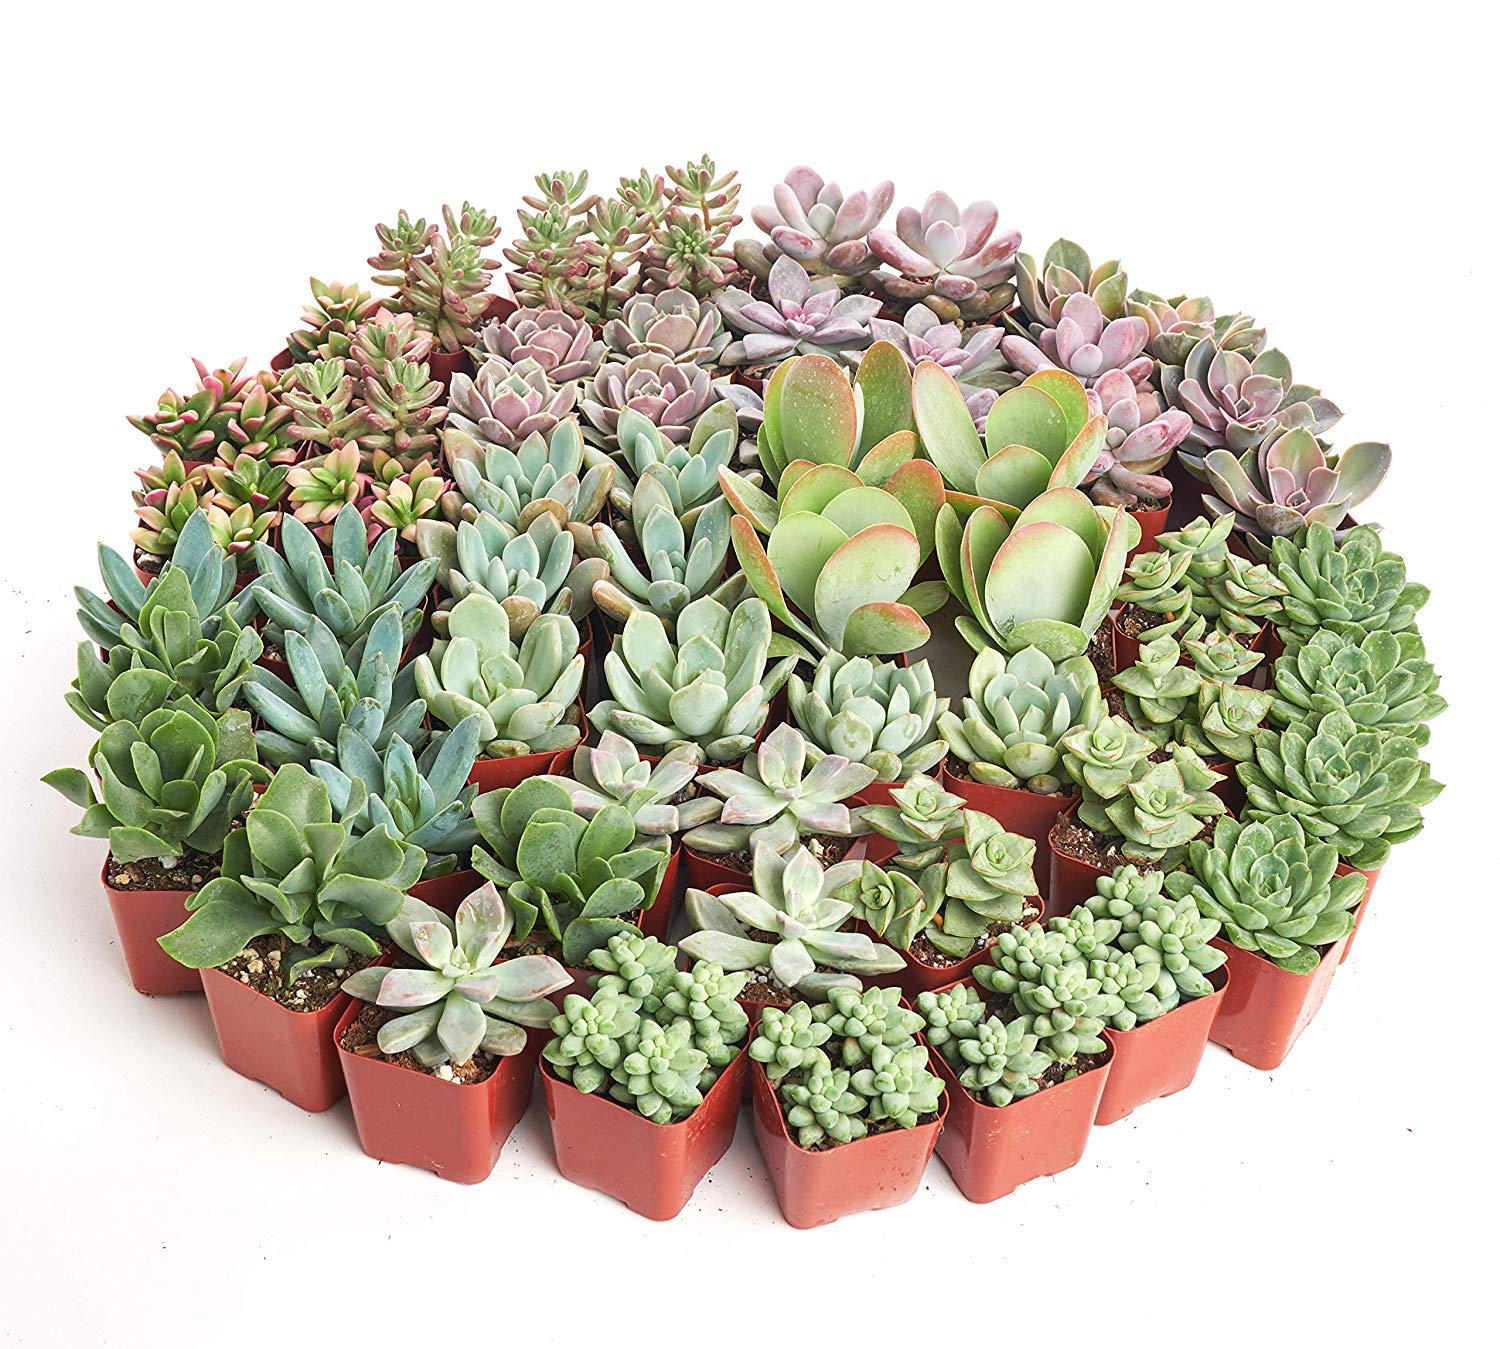 Shop Succulents| Premium Pastel Collection of LiveSucculent Plants, Hand Selected Variety Pack of Mini Succulents | Collection of 140 in 2'' pots by Shop Succulents (Image #4)